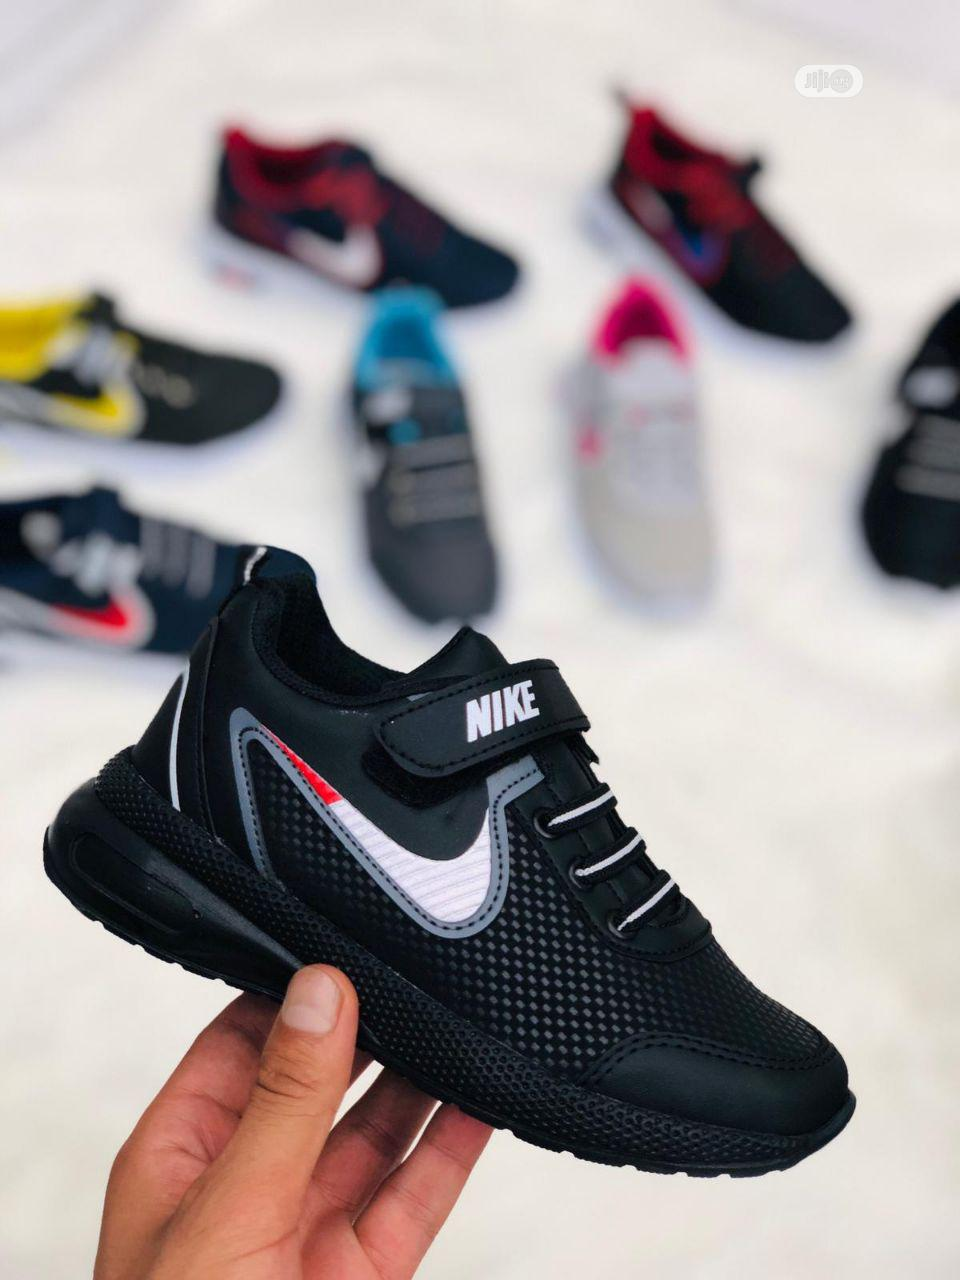 Best Quality Shoes in Different Colors